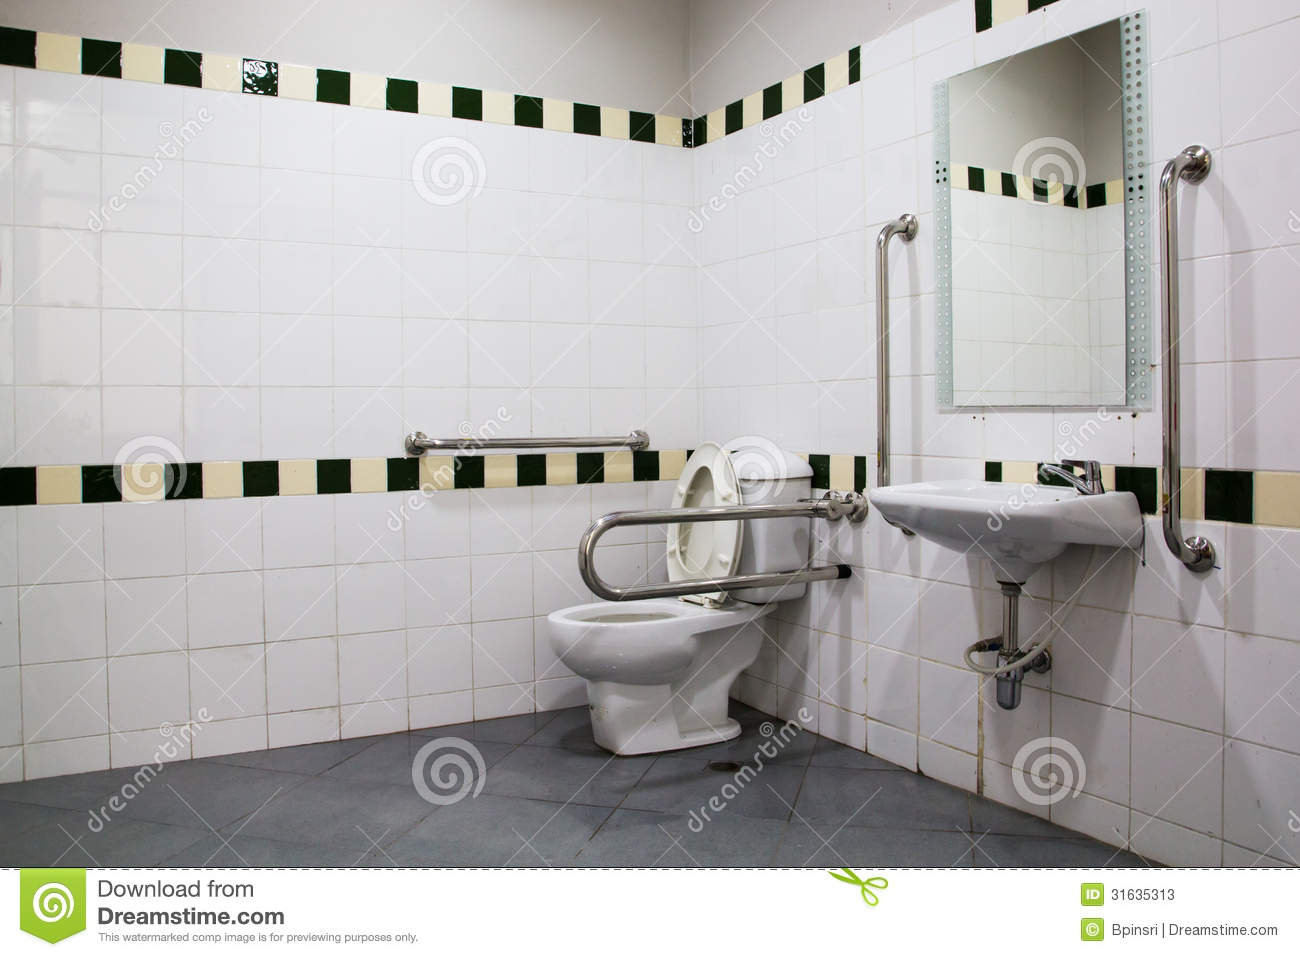 Handicap bathroom with grab bars and ceramic tile stock for Pictures of handicap bathrooms